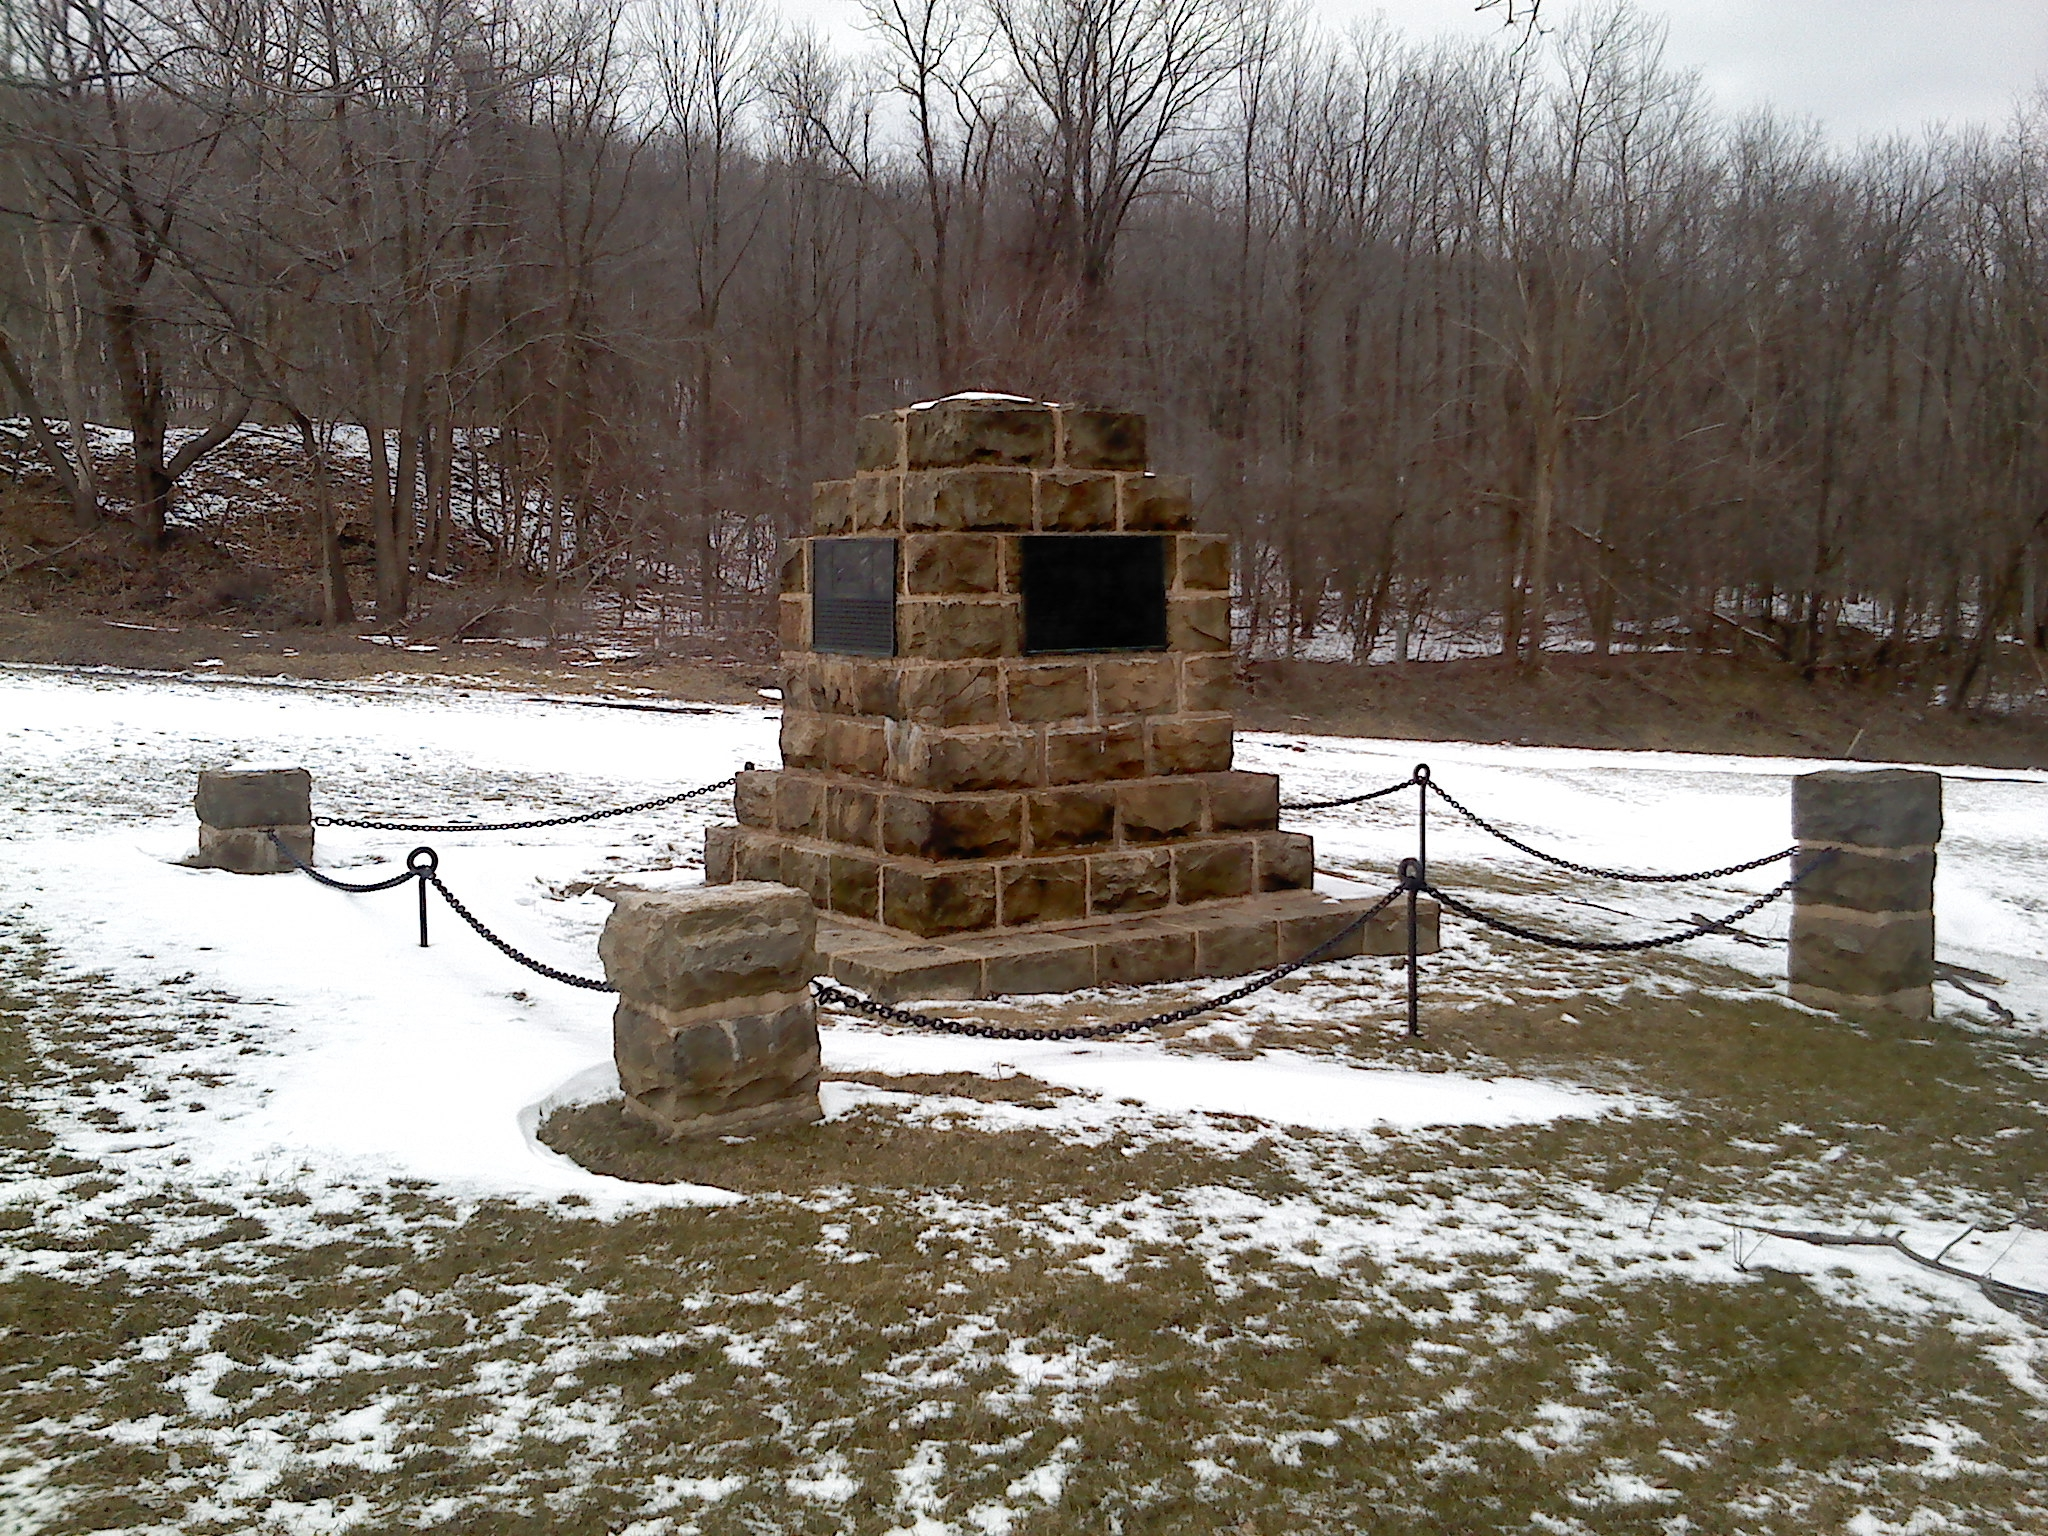 The Old Portage Rail Road Monument